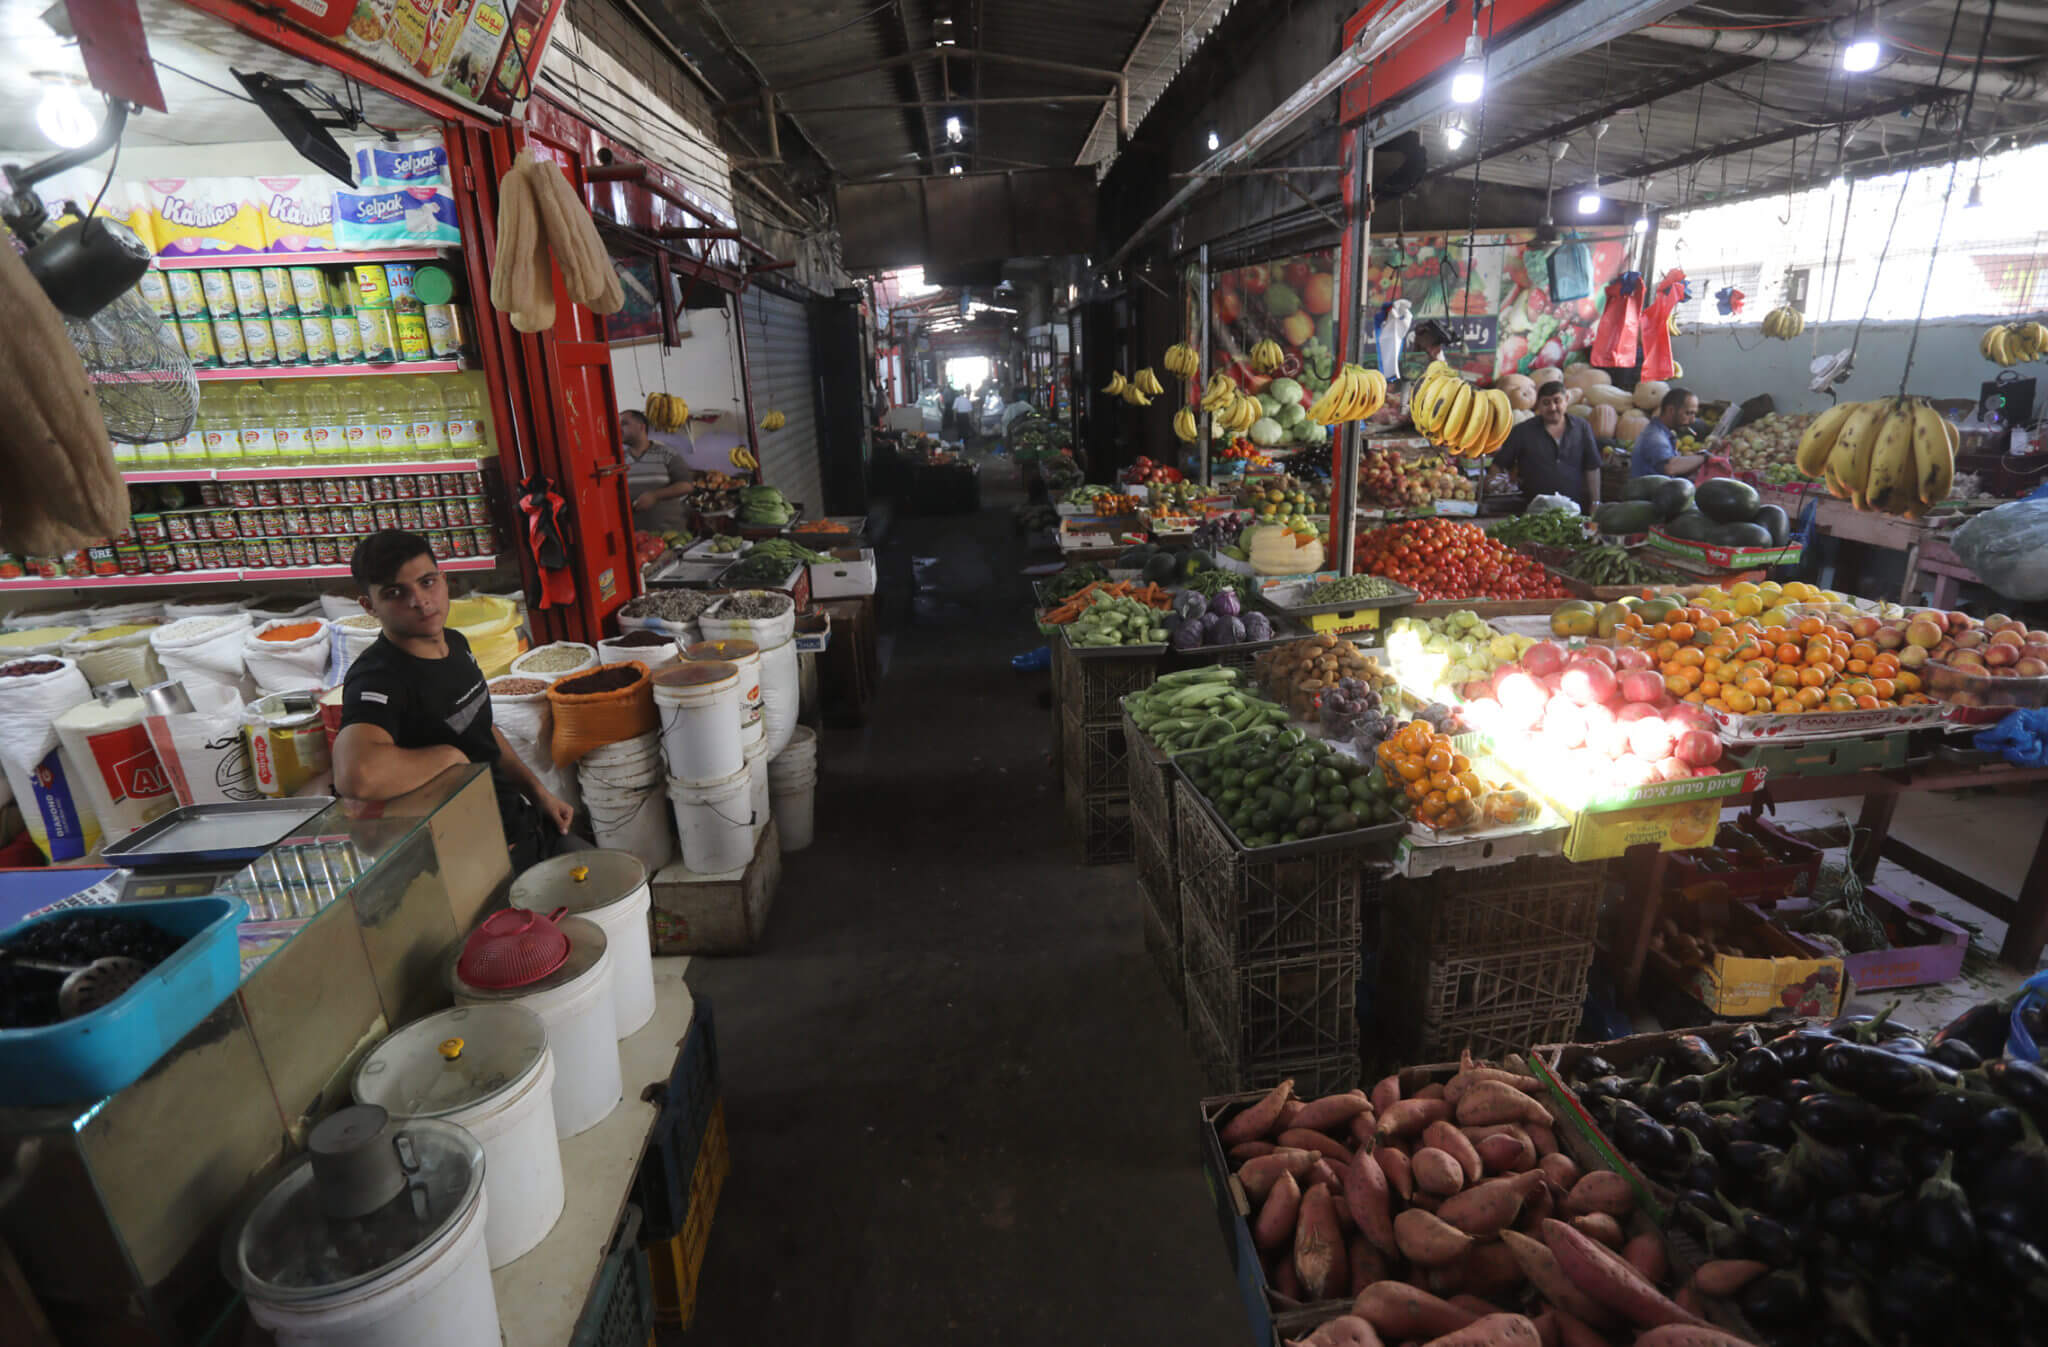 Gaza's central market is almost empty